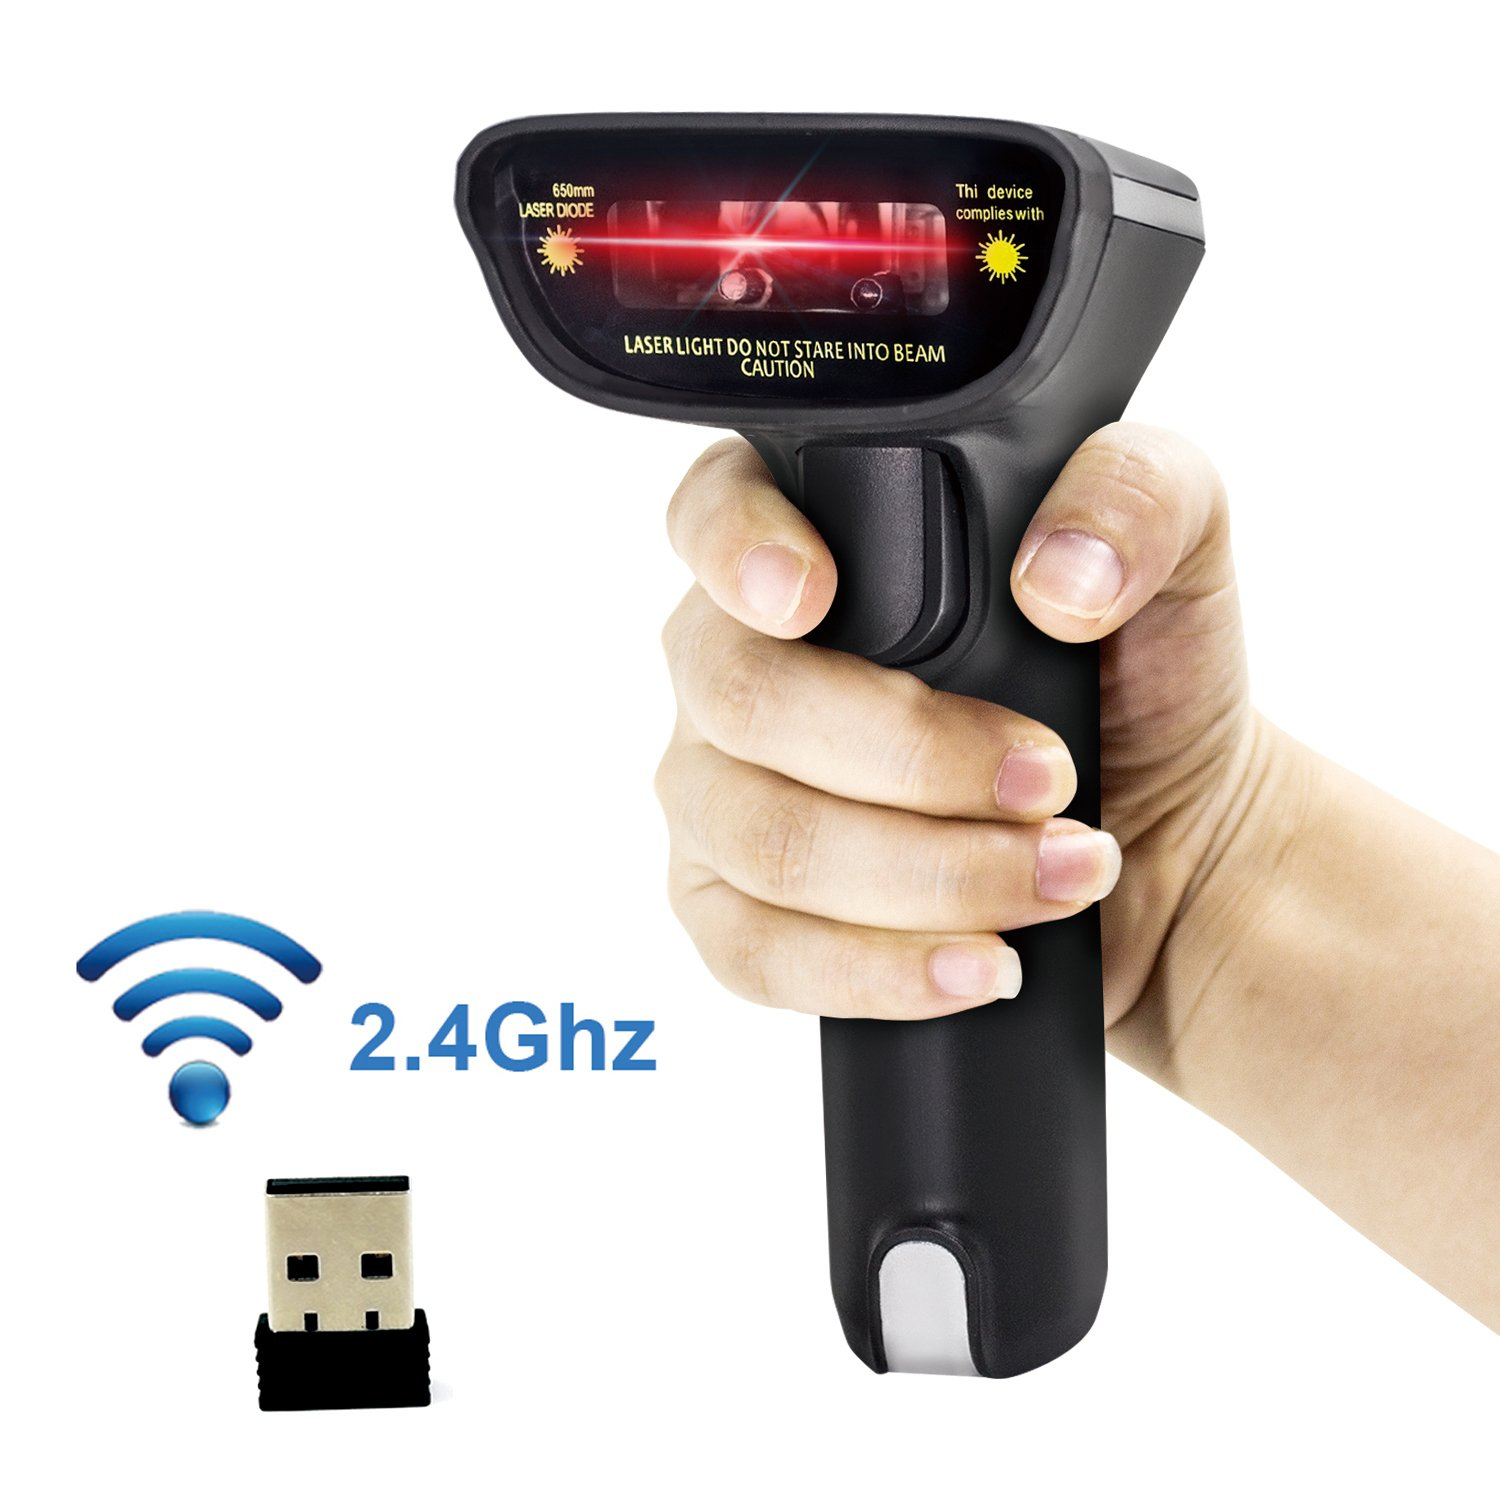 USB Wireless Barcode Scanner,alacrity with Vibration Alert Function Cordless 1D Laser Automatic Barcode Reader Handhold Bar Code Scanner with USB Receiver for Store, Supermarket, Warehouse